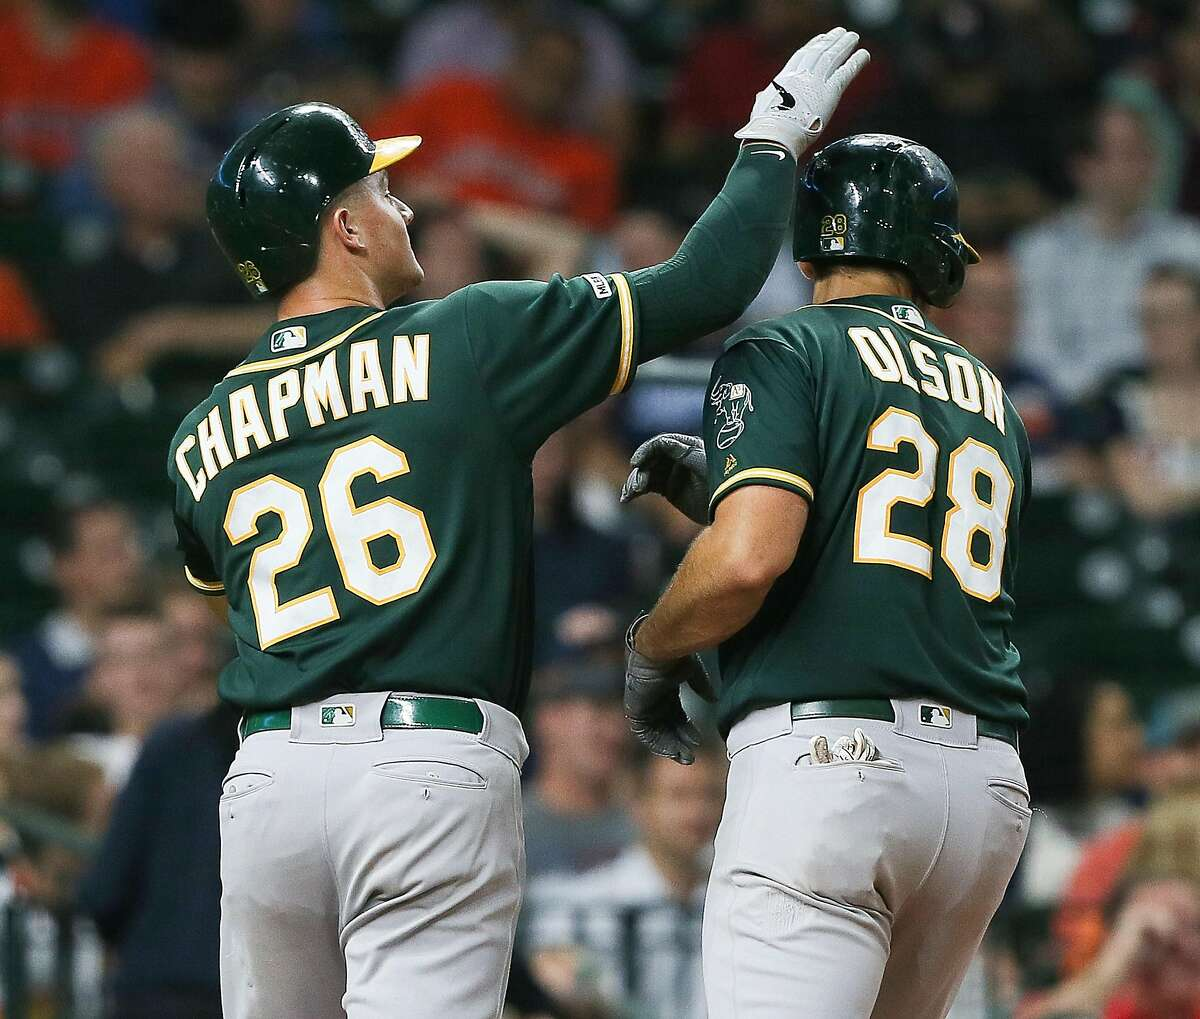 HOUSTON, TEXAS - SEPTEMBER 10: Matt Chapman #26 of the Oakland Athletics taps Matt Olson #28 on his head after Olson hit a home run in the fourth inning against the Houston Astros at Minute Maid Park on September 10, 2019 in Houston, Texas. (Photo by Bob Levey/Getty Images)